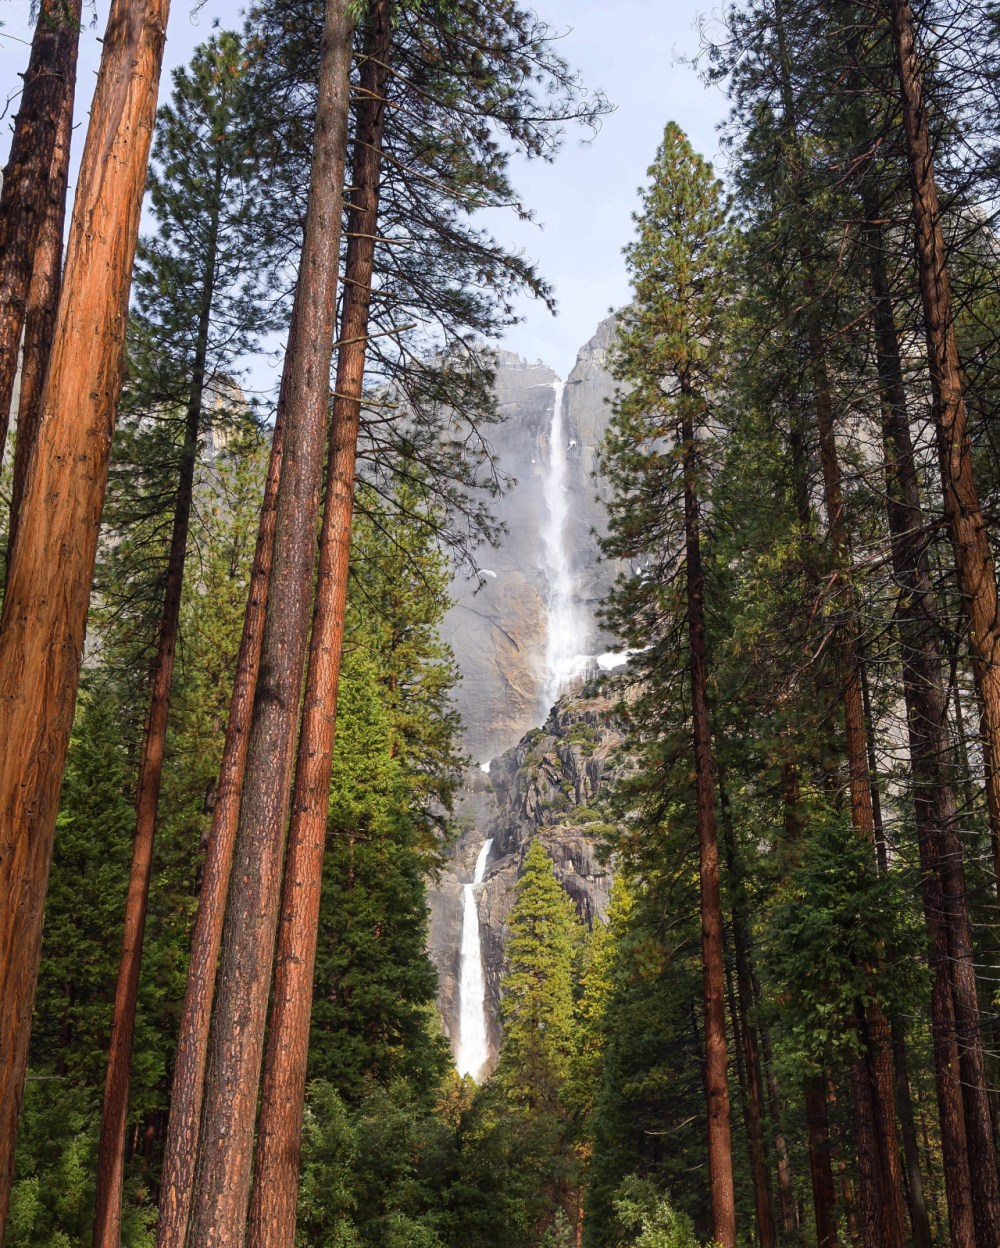 Yosemite Falls at Yosemite National Park in California. Cascading more than 2,400 feet above Yosemite Valley, it's the tallest waterfall in North America. Photo courtesy of Tiffany Nguyen. Posted on Tumblr by the US Department of the Interior, 4/29/16.